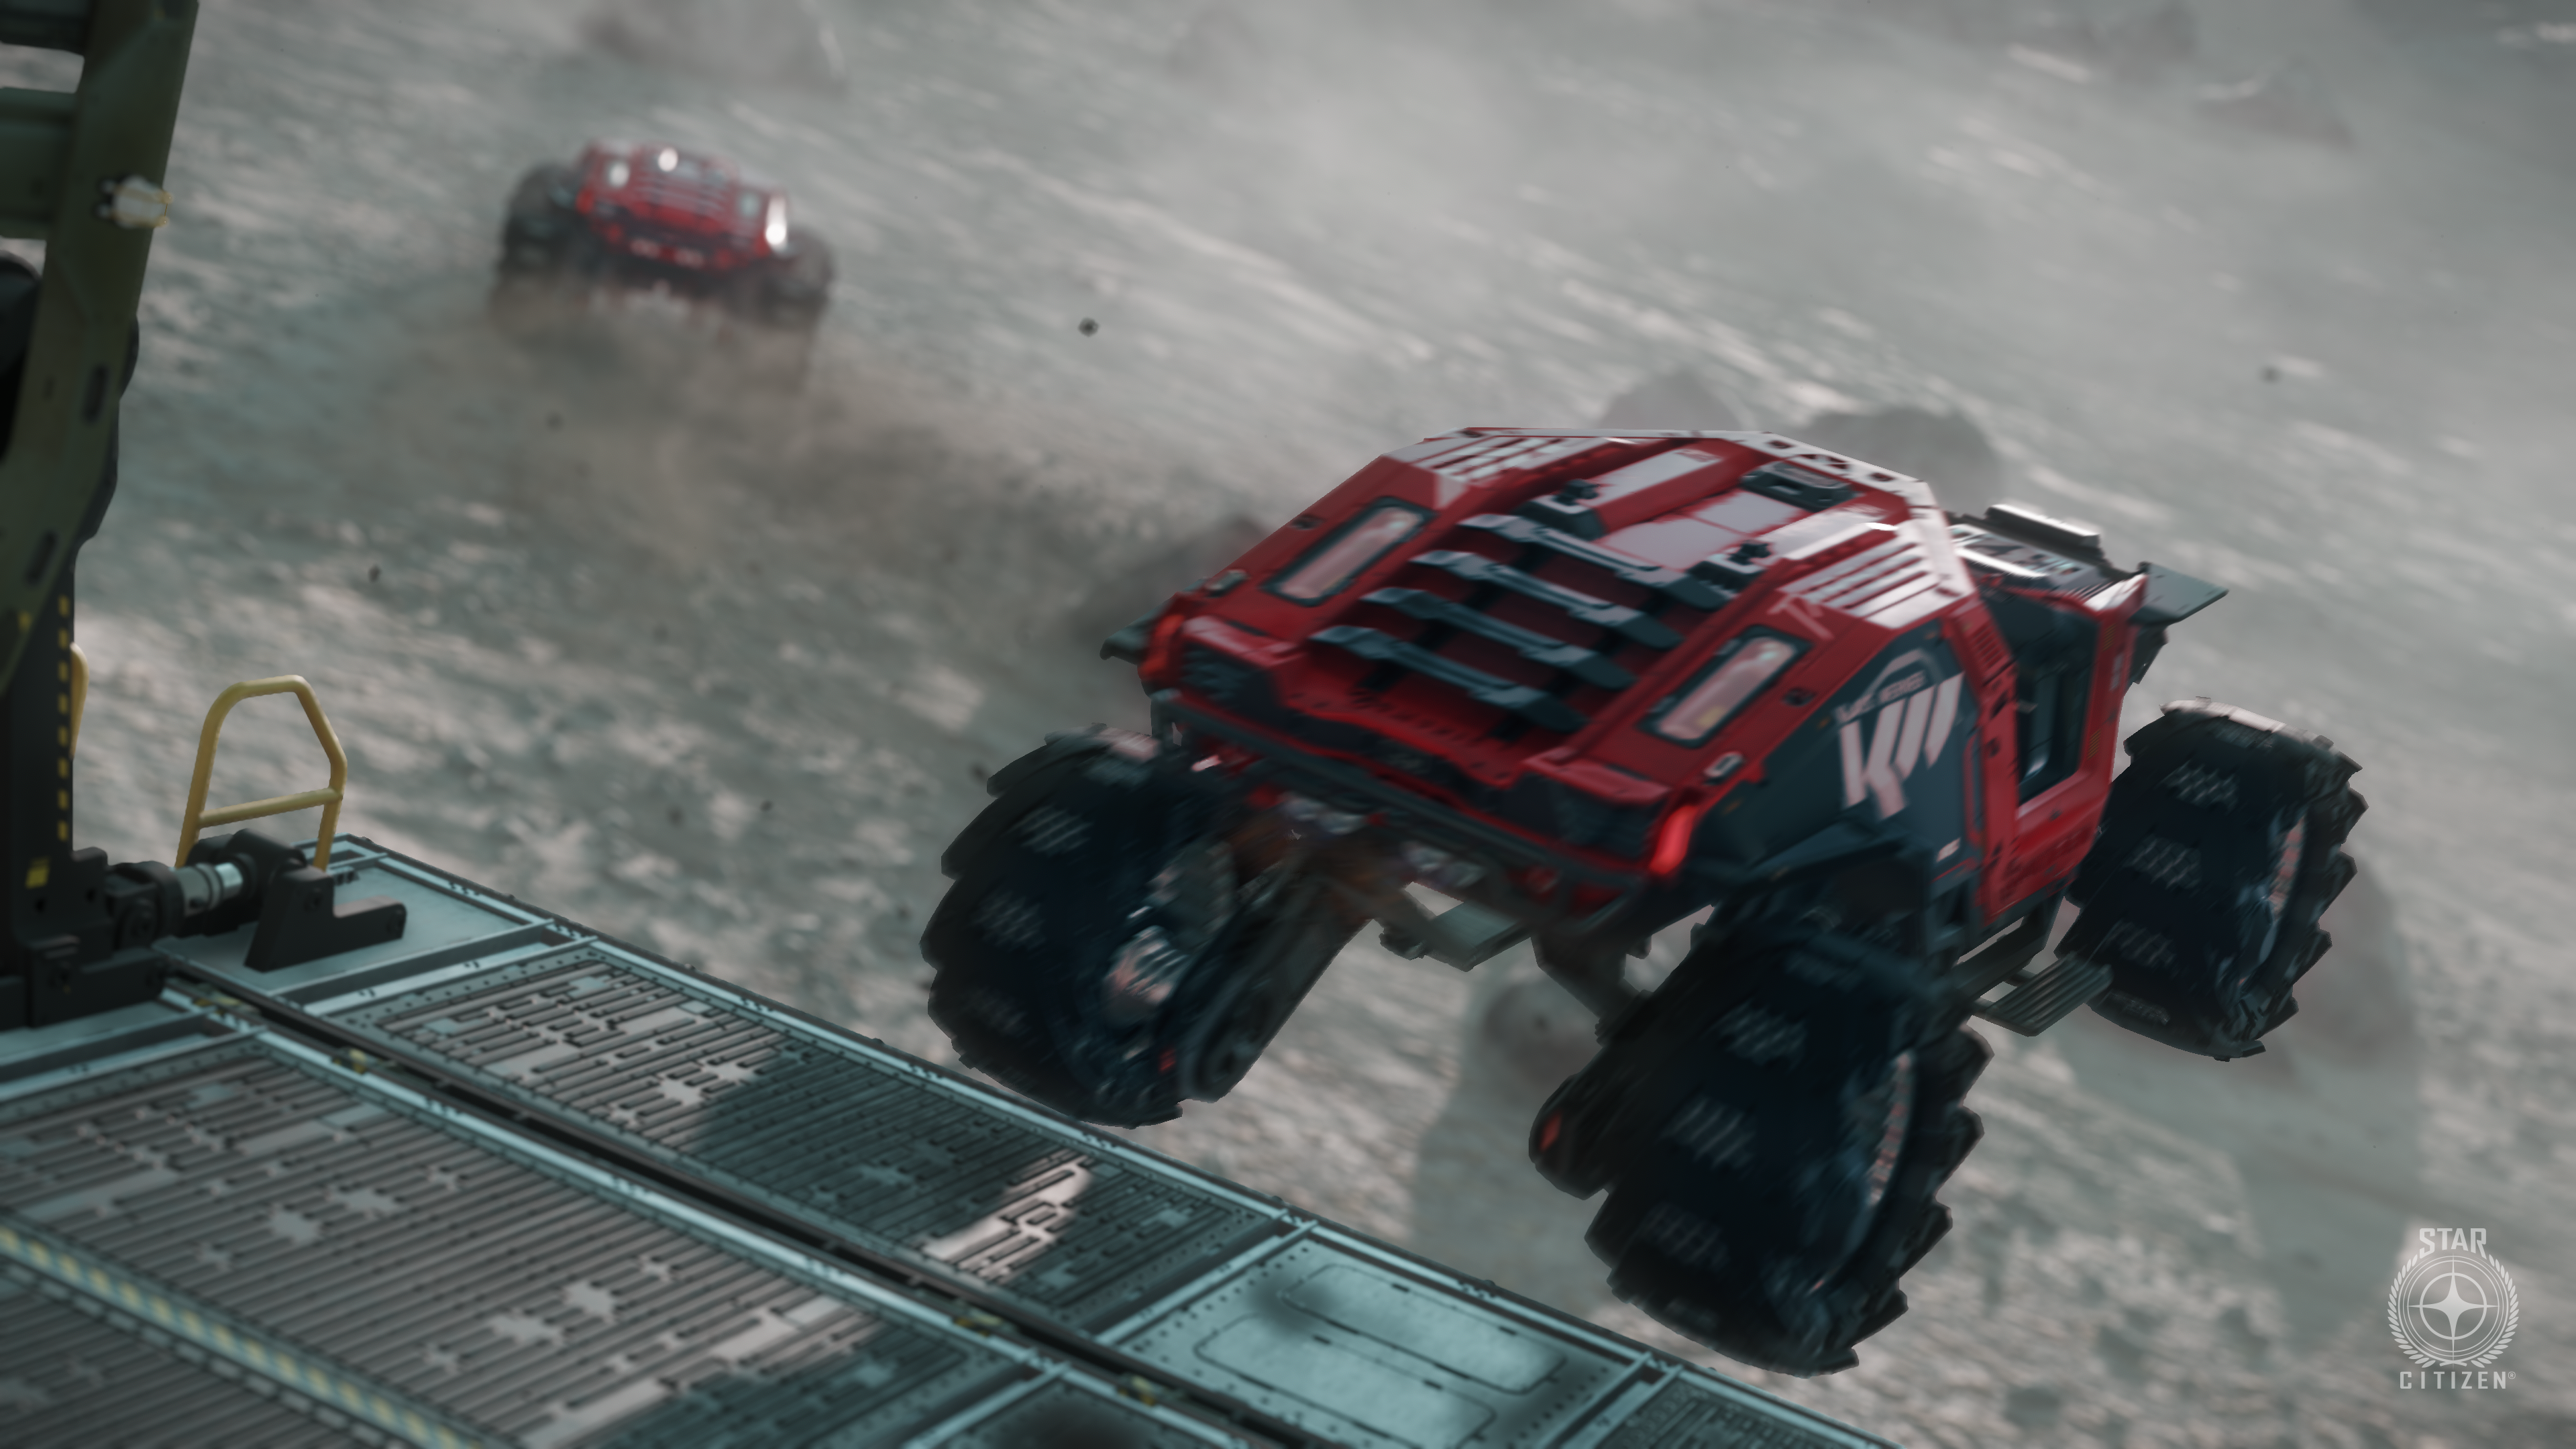 Cloudimperiumgames Starcitizen TumbrilCycloneRed